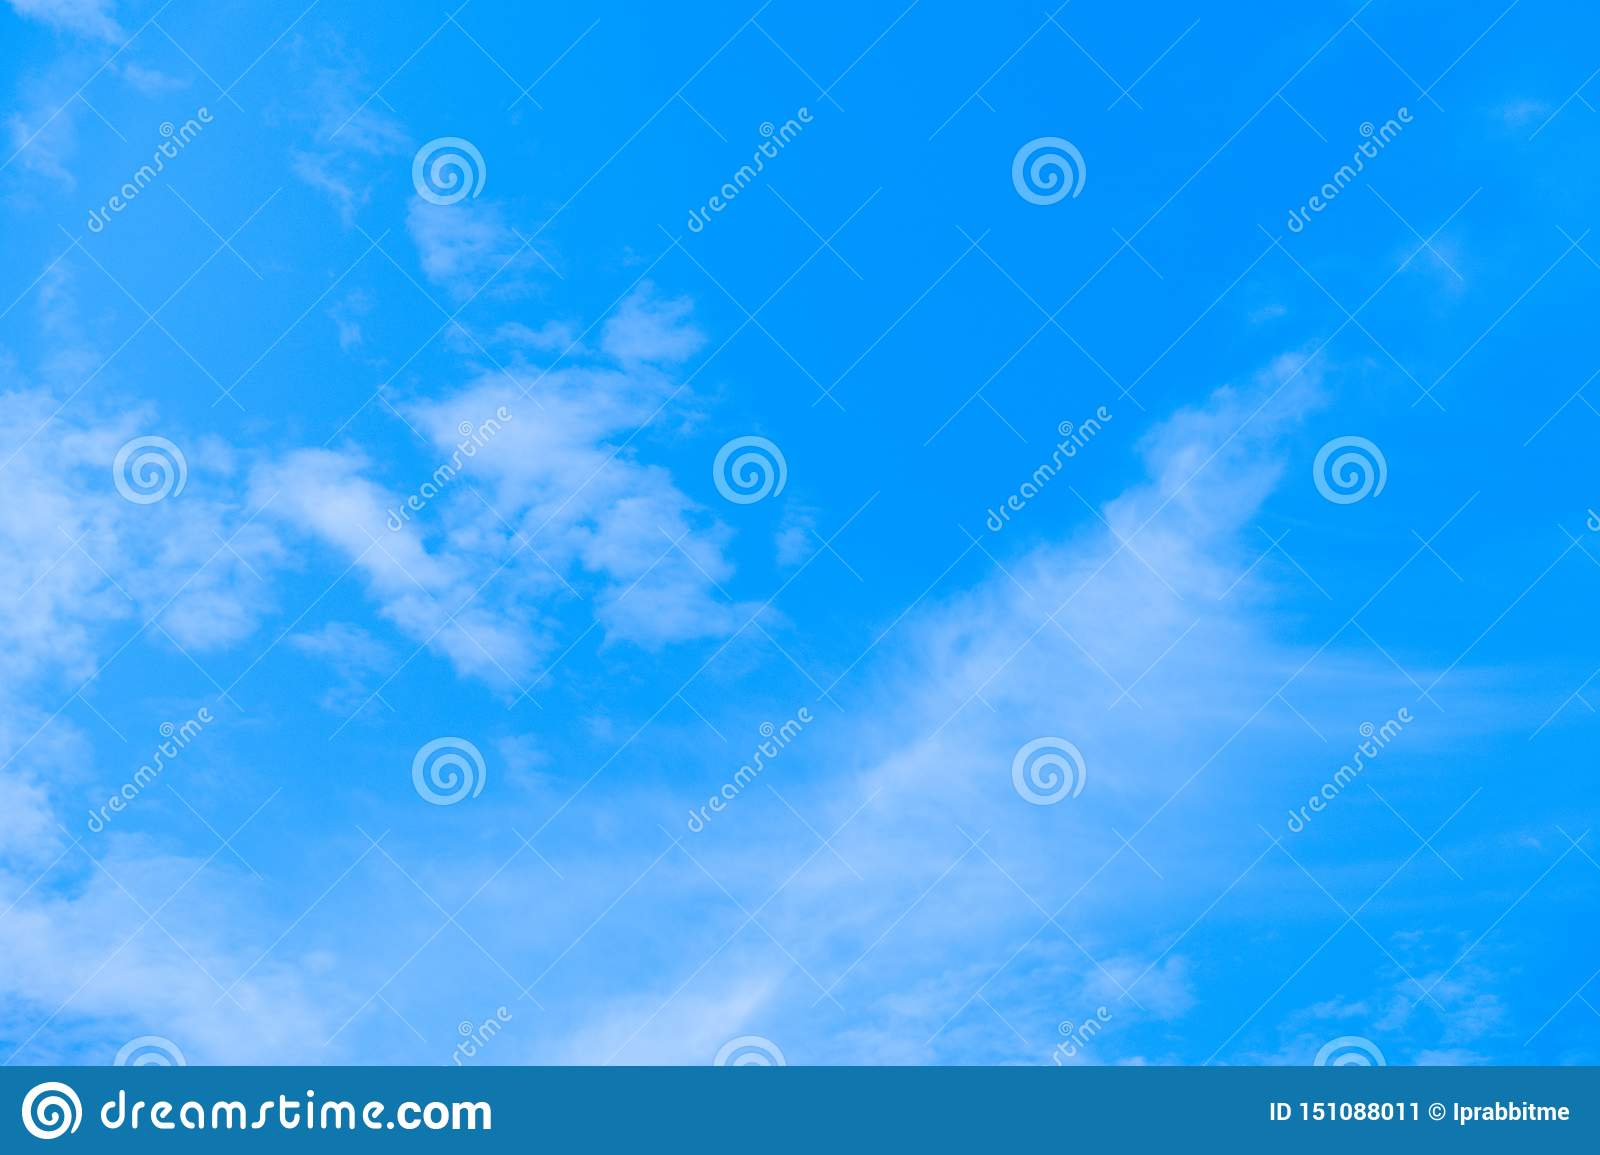 Blue sky and air white clouds background